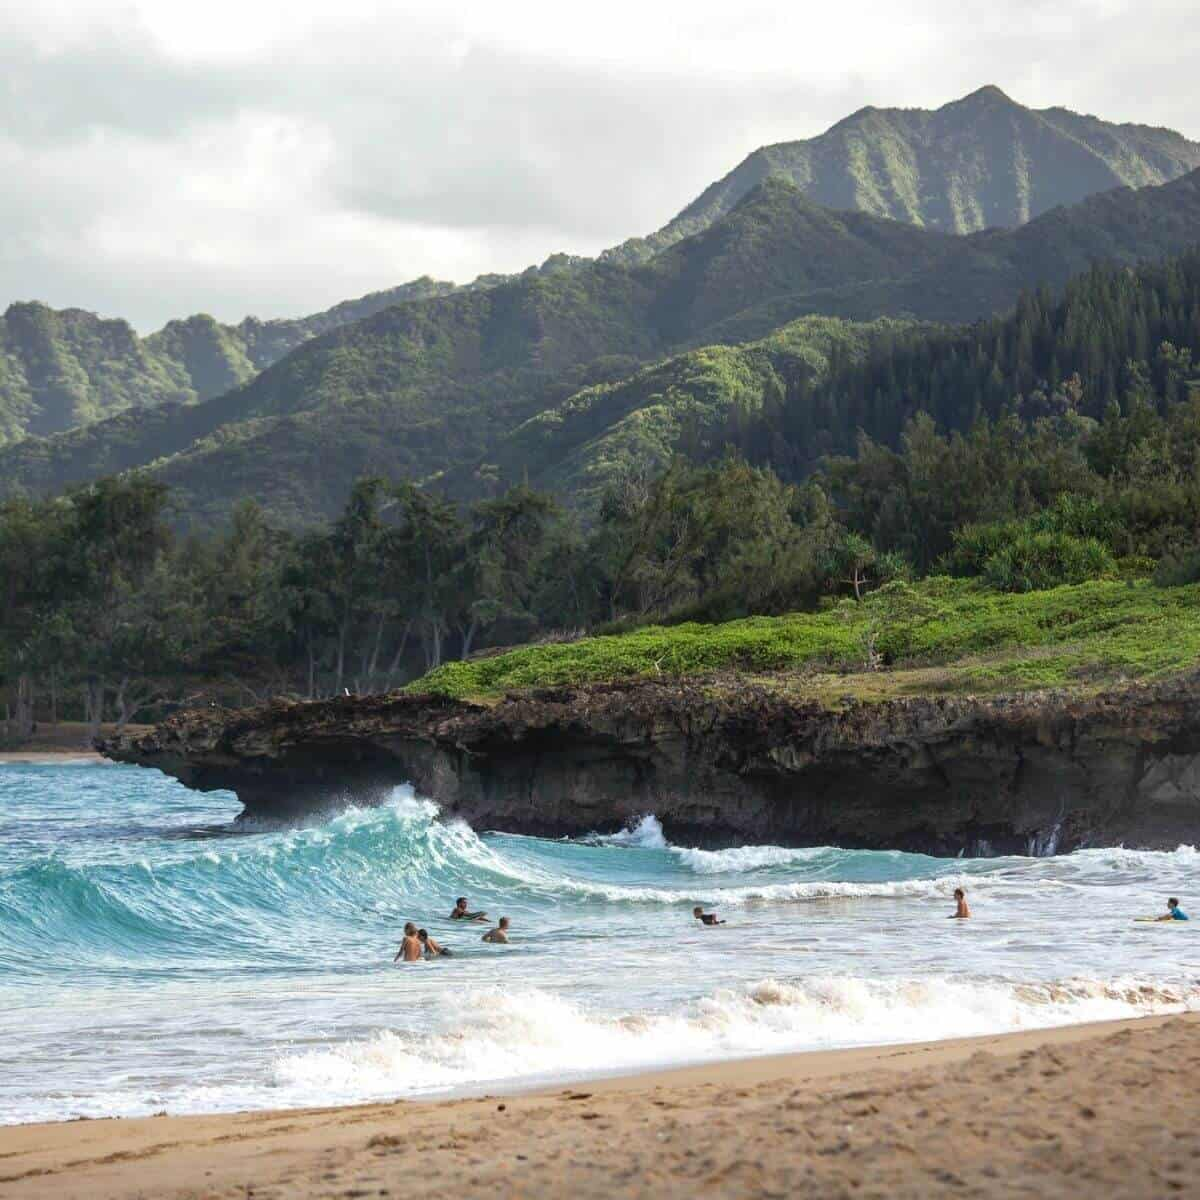 People swimming at a beach in Hawaii with mountains in the background.